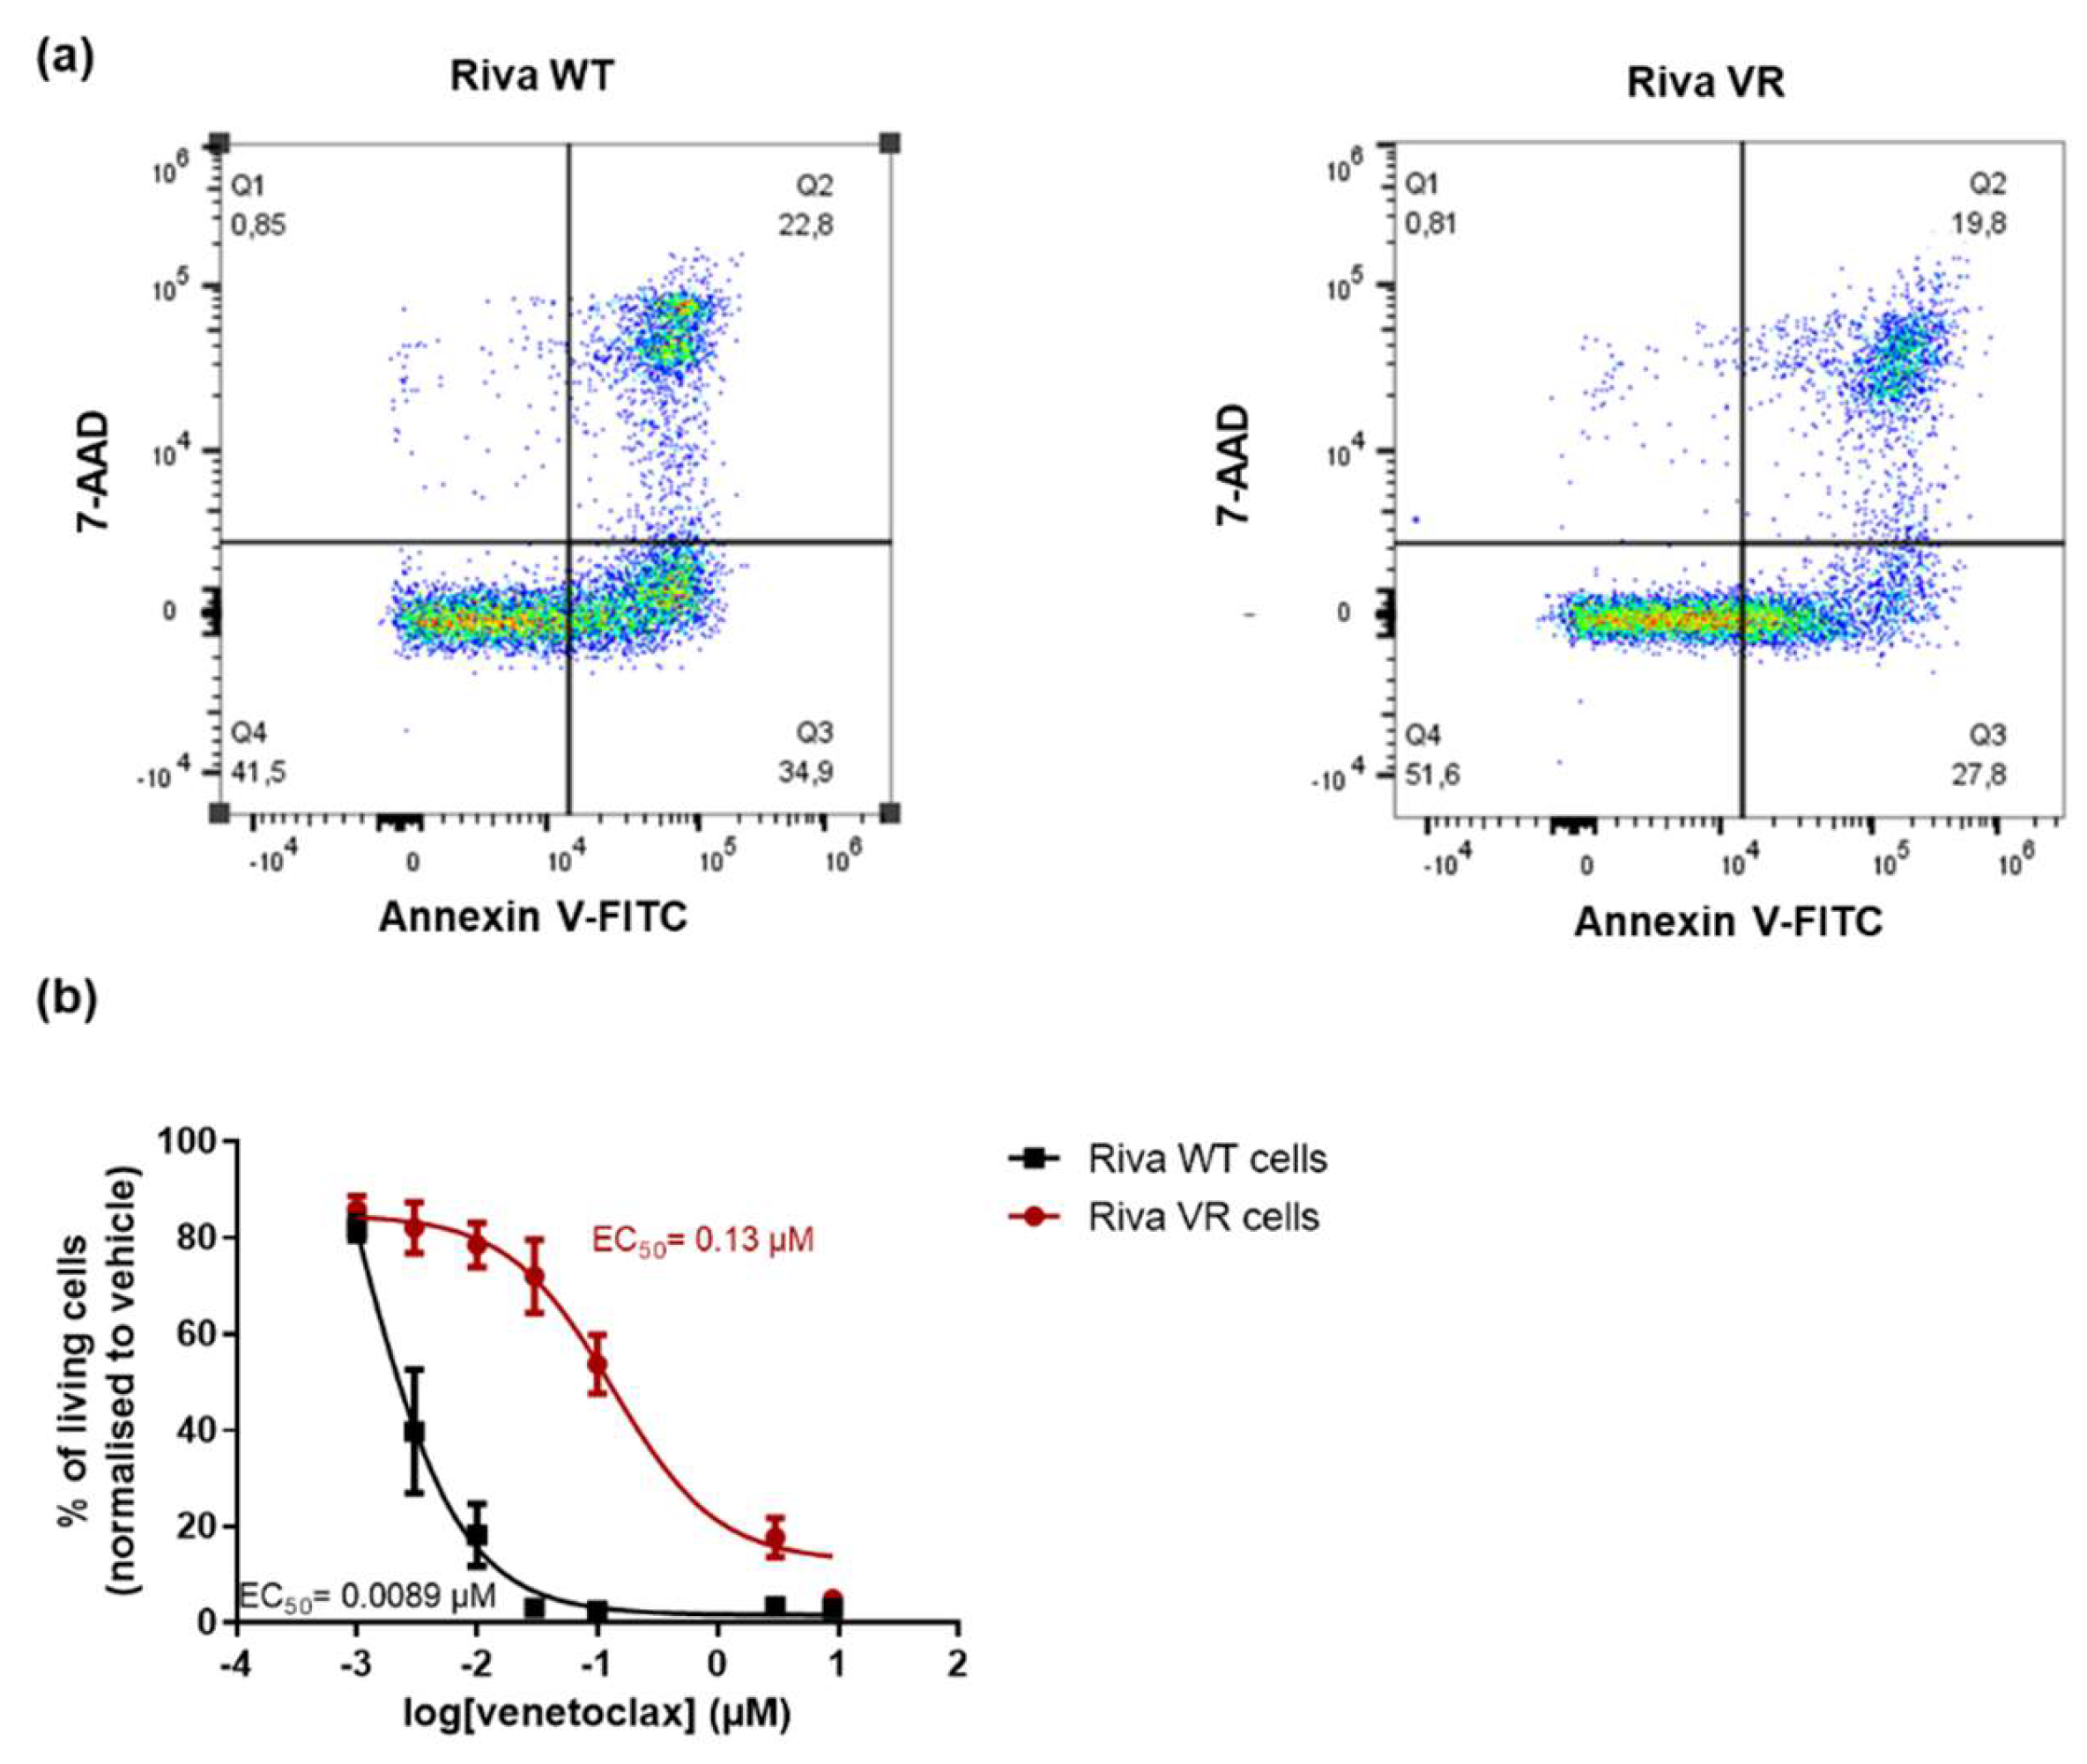 Primed for the kill: occupying Bcl-2 to target death in acute myeloid leukaemia